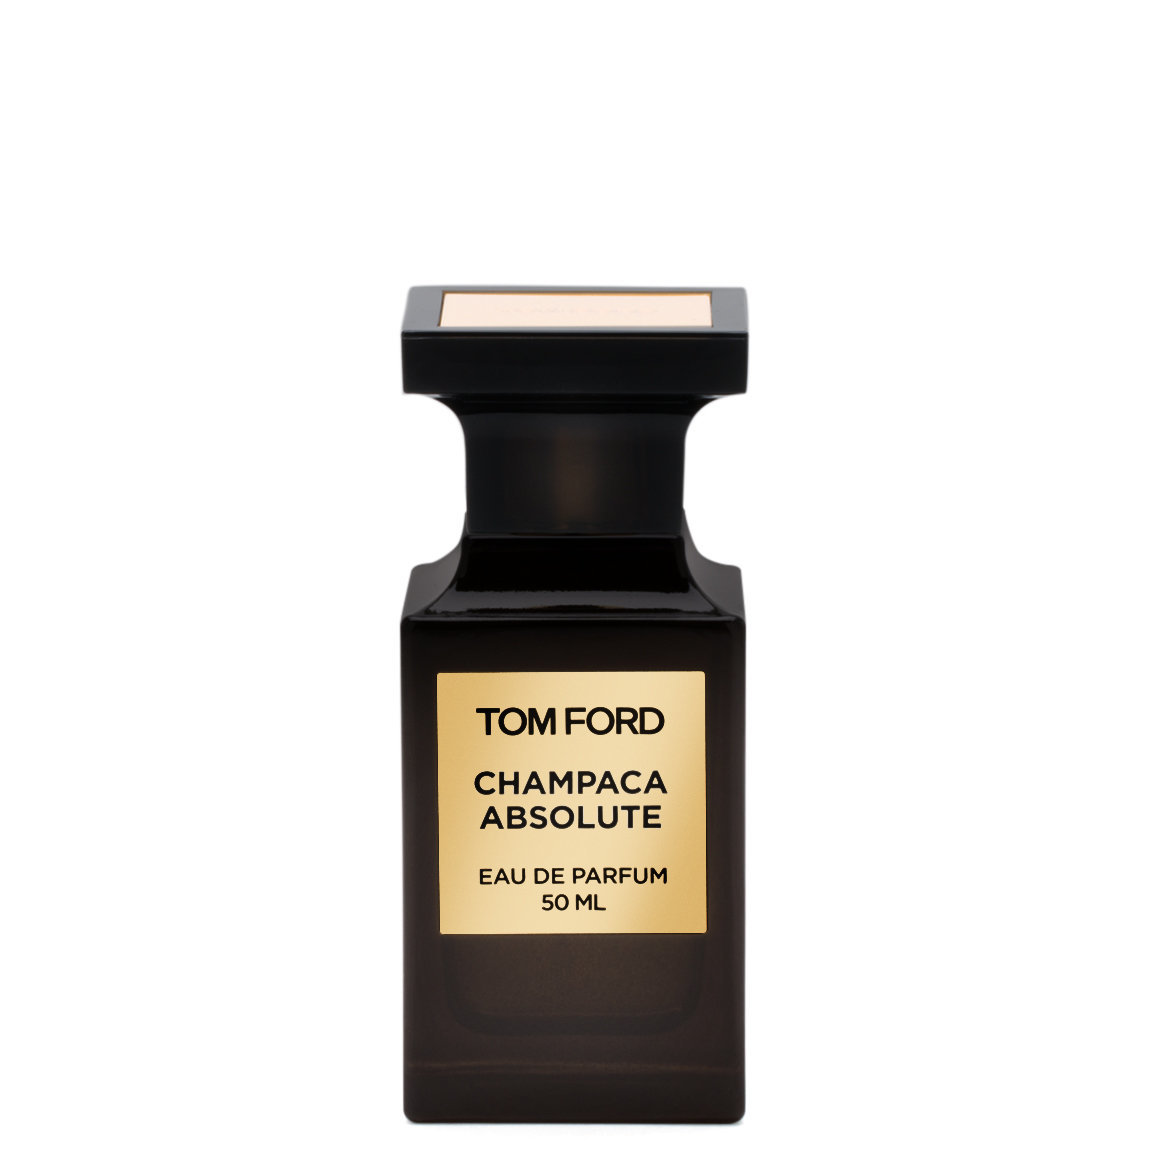 TOM FORD Champaca Absolute product smear.